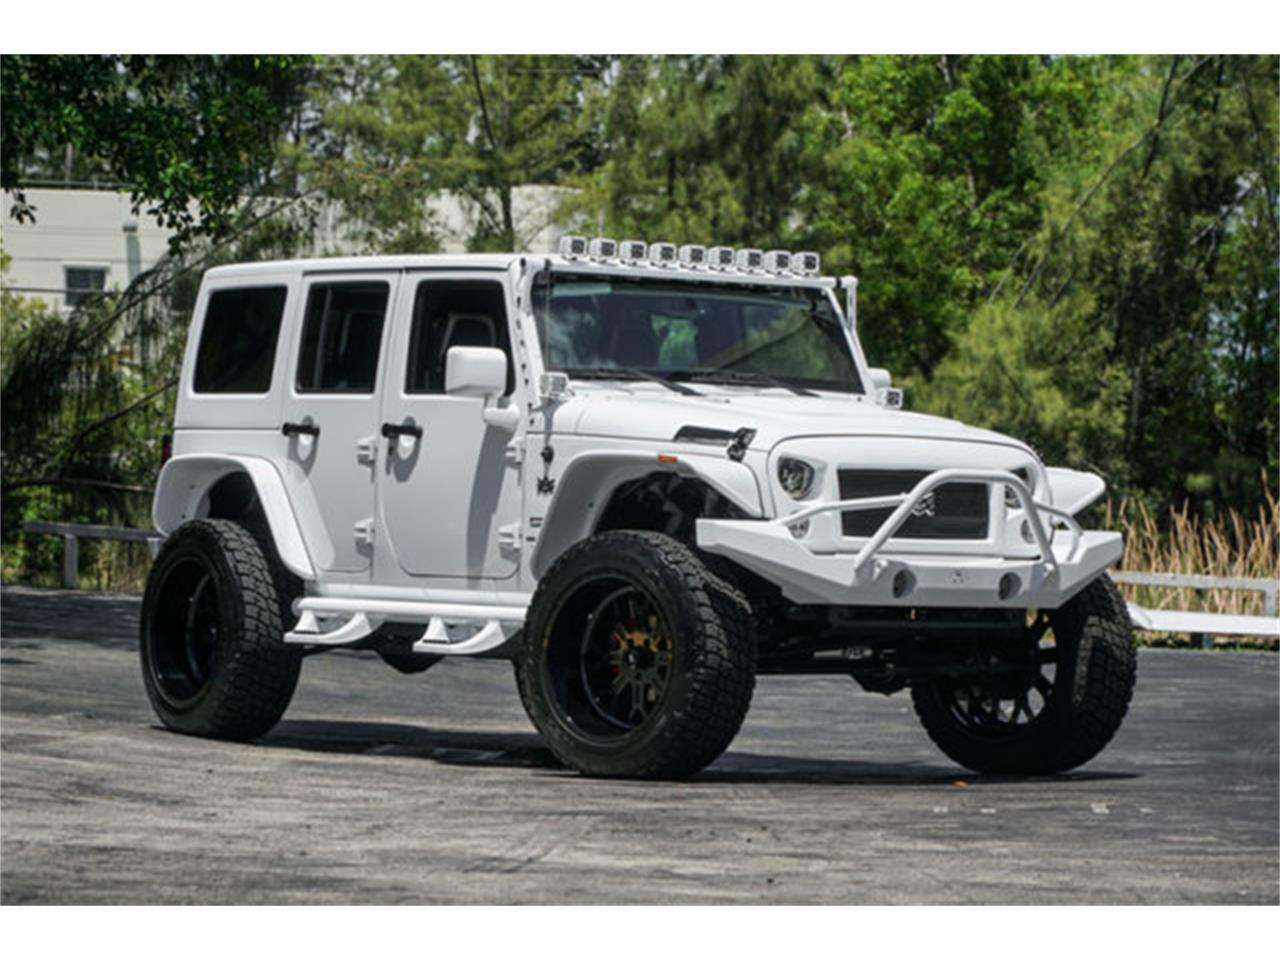 Large Picture of 2018 Jeep Wrangler located in Miami Florida - $51,900.00 Offered by The Garage - Q4VB